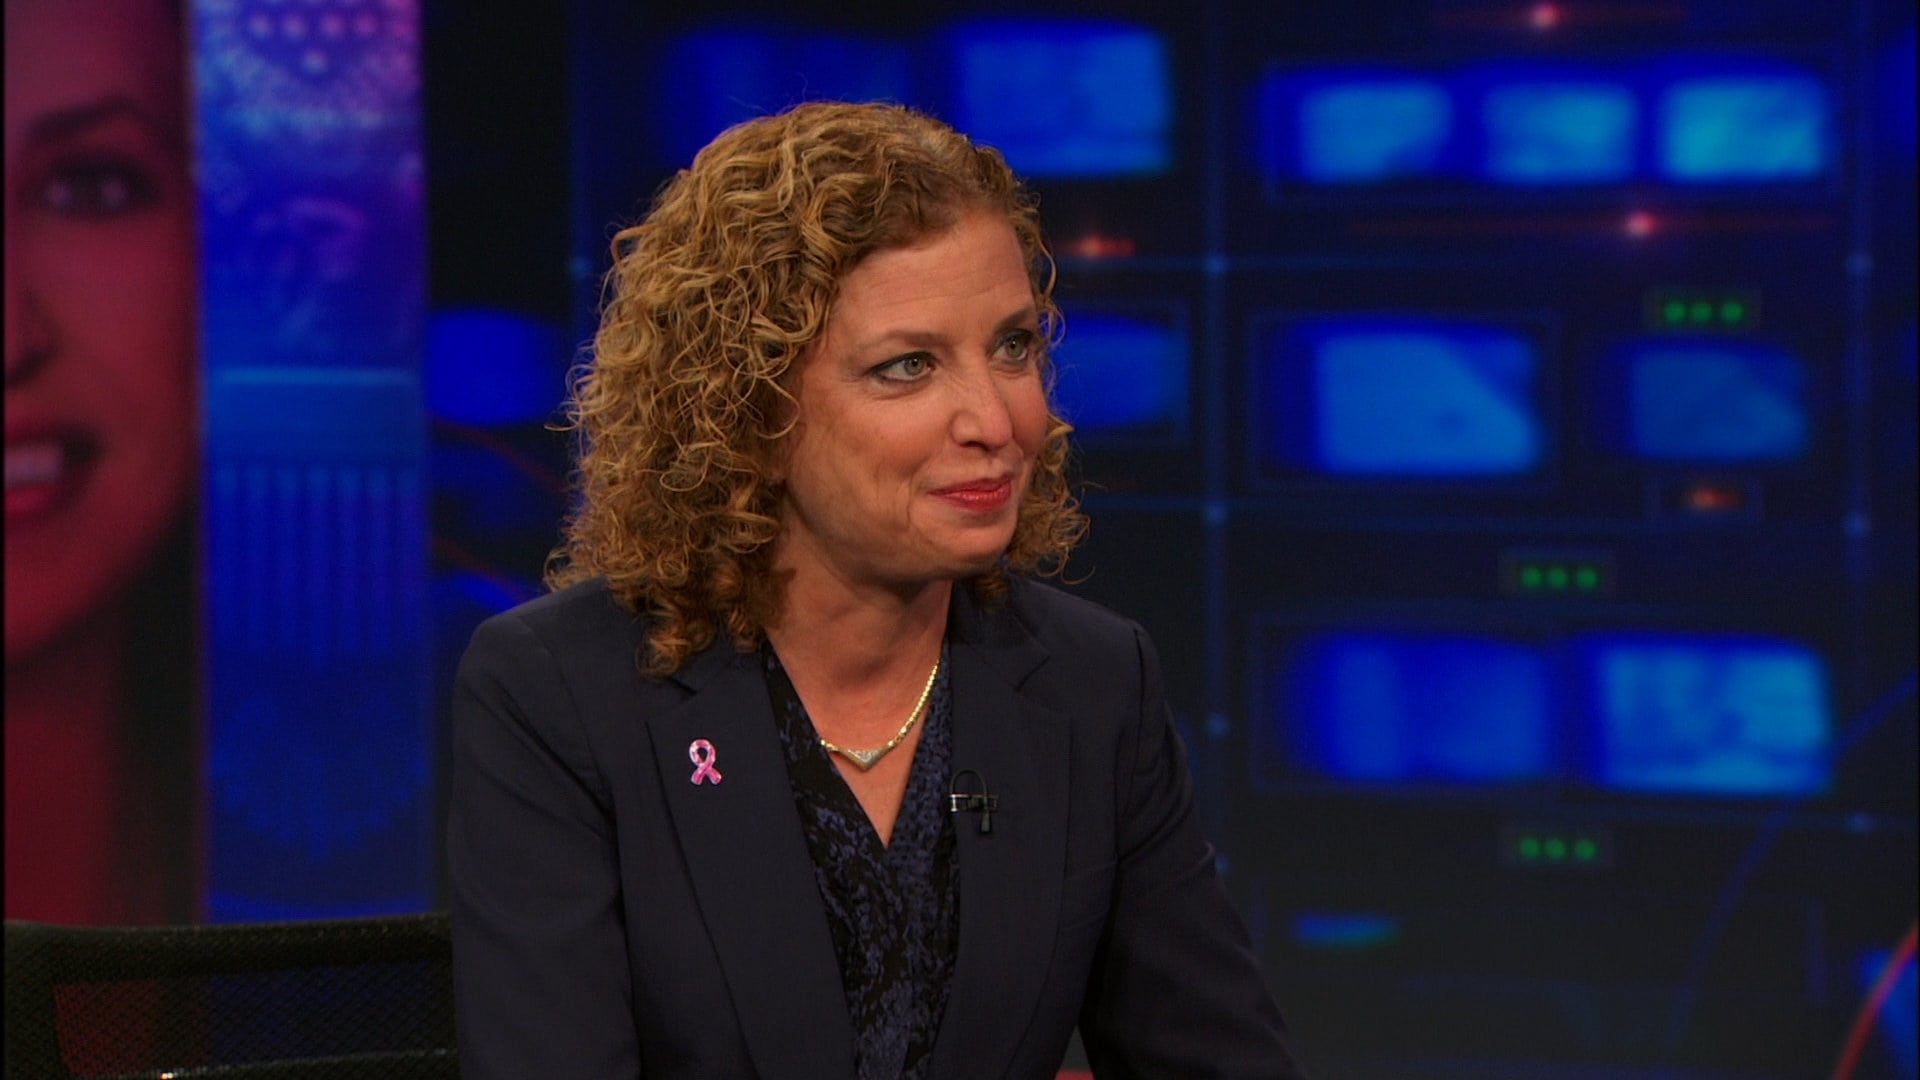 The Daily Show with Trevor Noah Season 19 :Episode 14  Rep. Debbie Wasserman Schultz